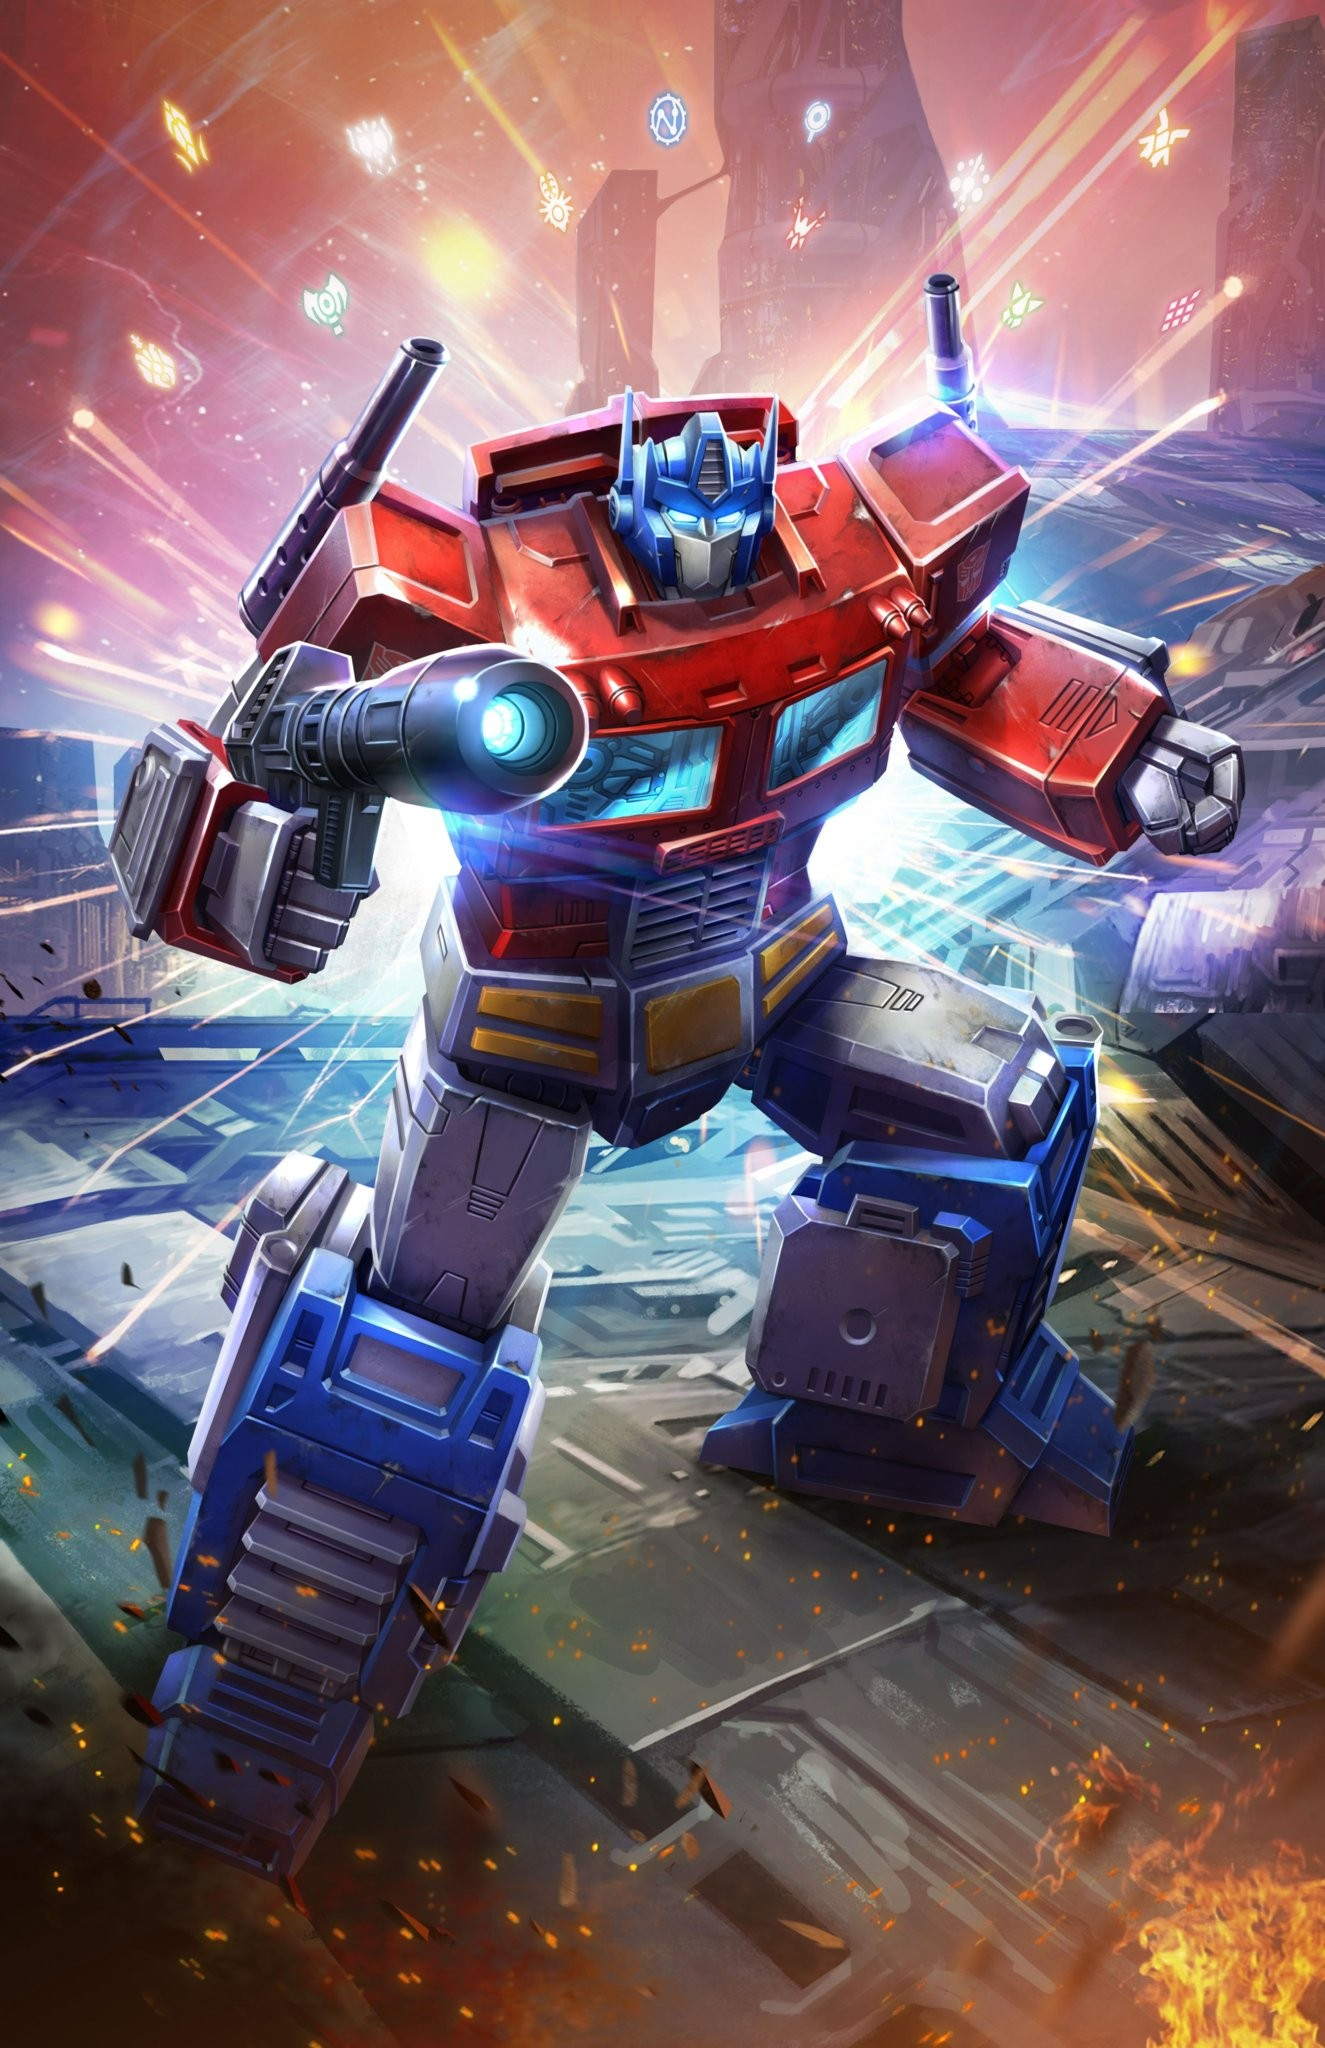 official artwork for transformers power of the primes